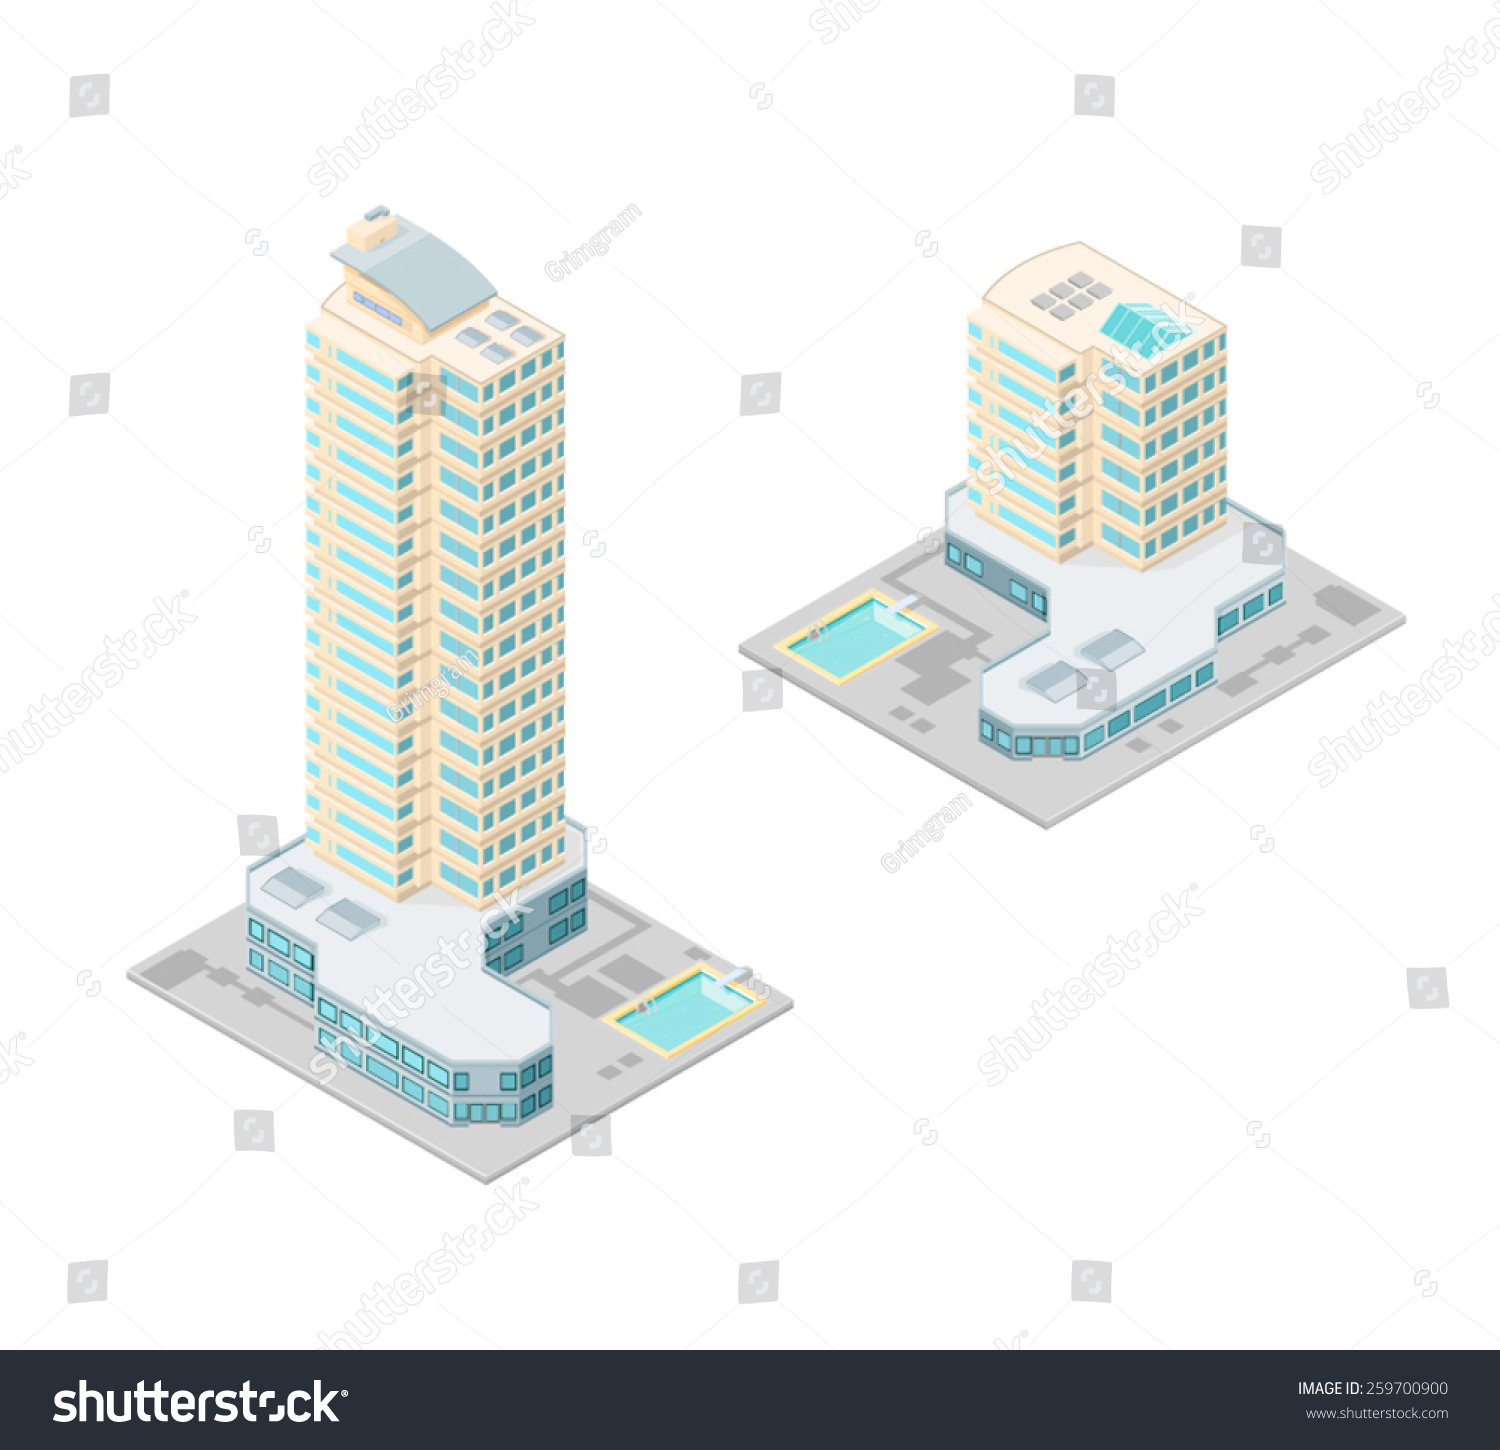 Hotel Large Diagram Wiring Diagrams How To Draw A State Machine Vector Illustration Isometric Hotels Swimming Pool Stock Rh Shutterstock Com Parking Lots With